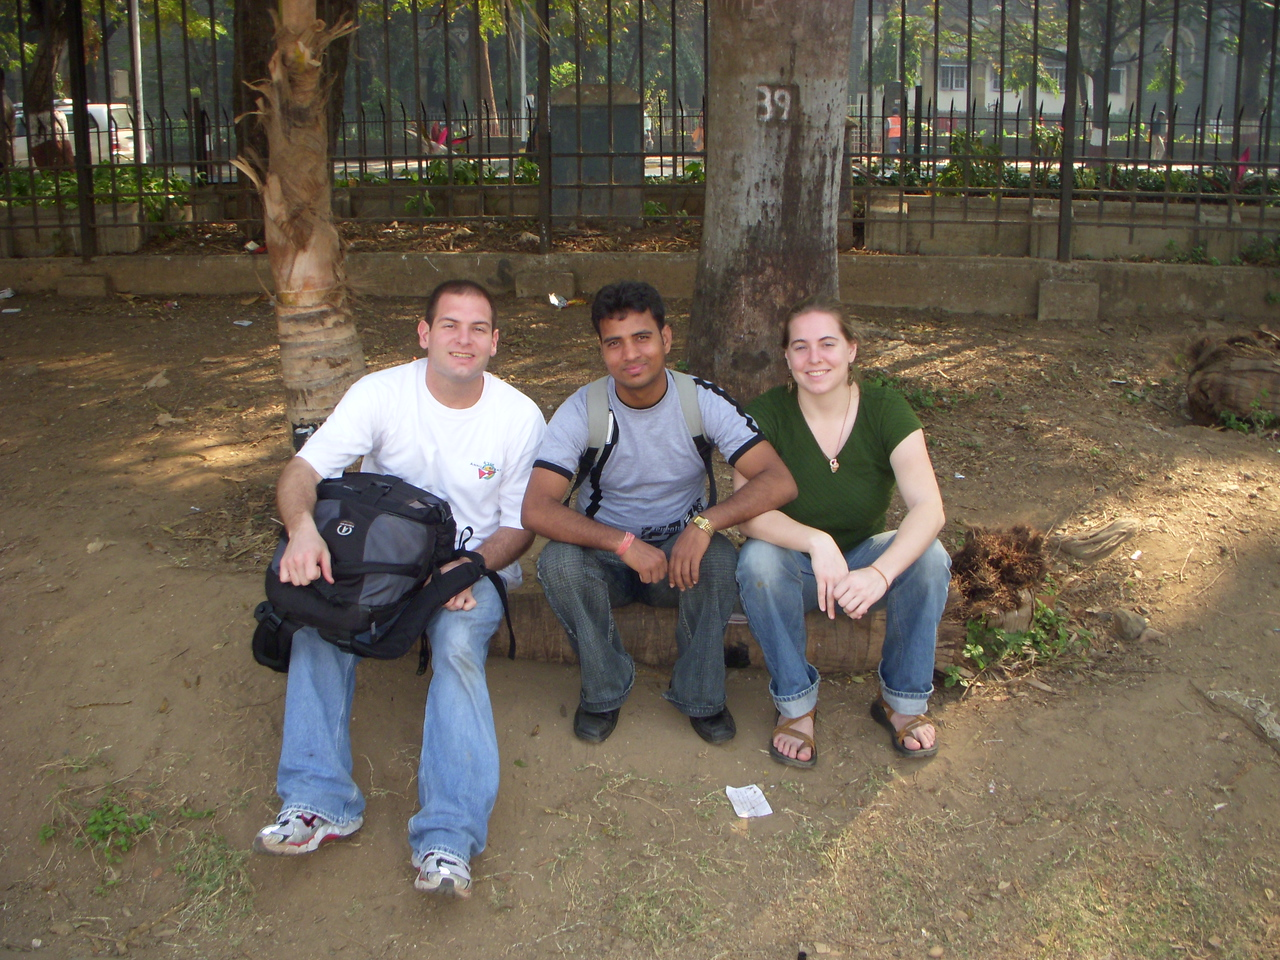 Jon, Dilip and Cheryl watching Cricket games at Shivaji Park